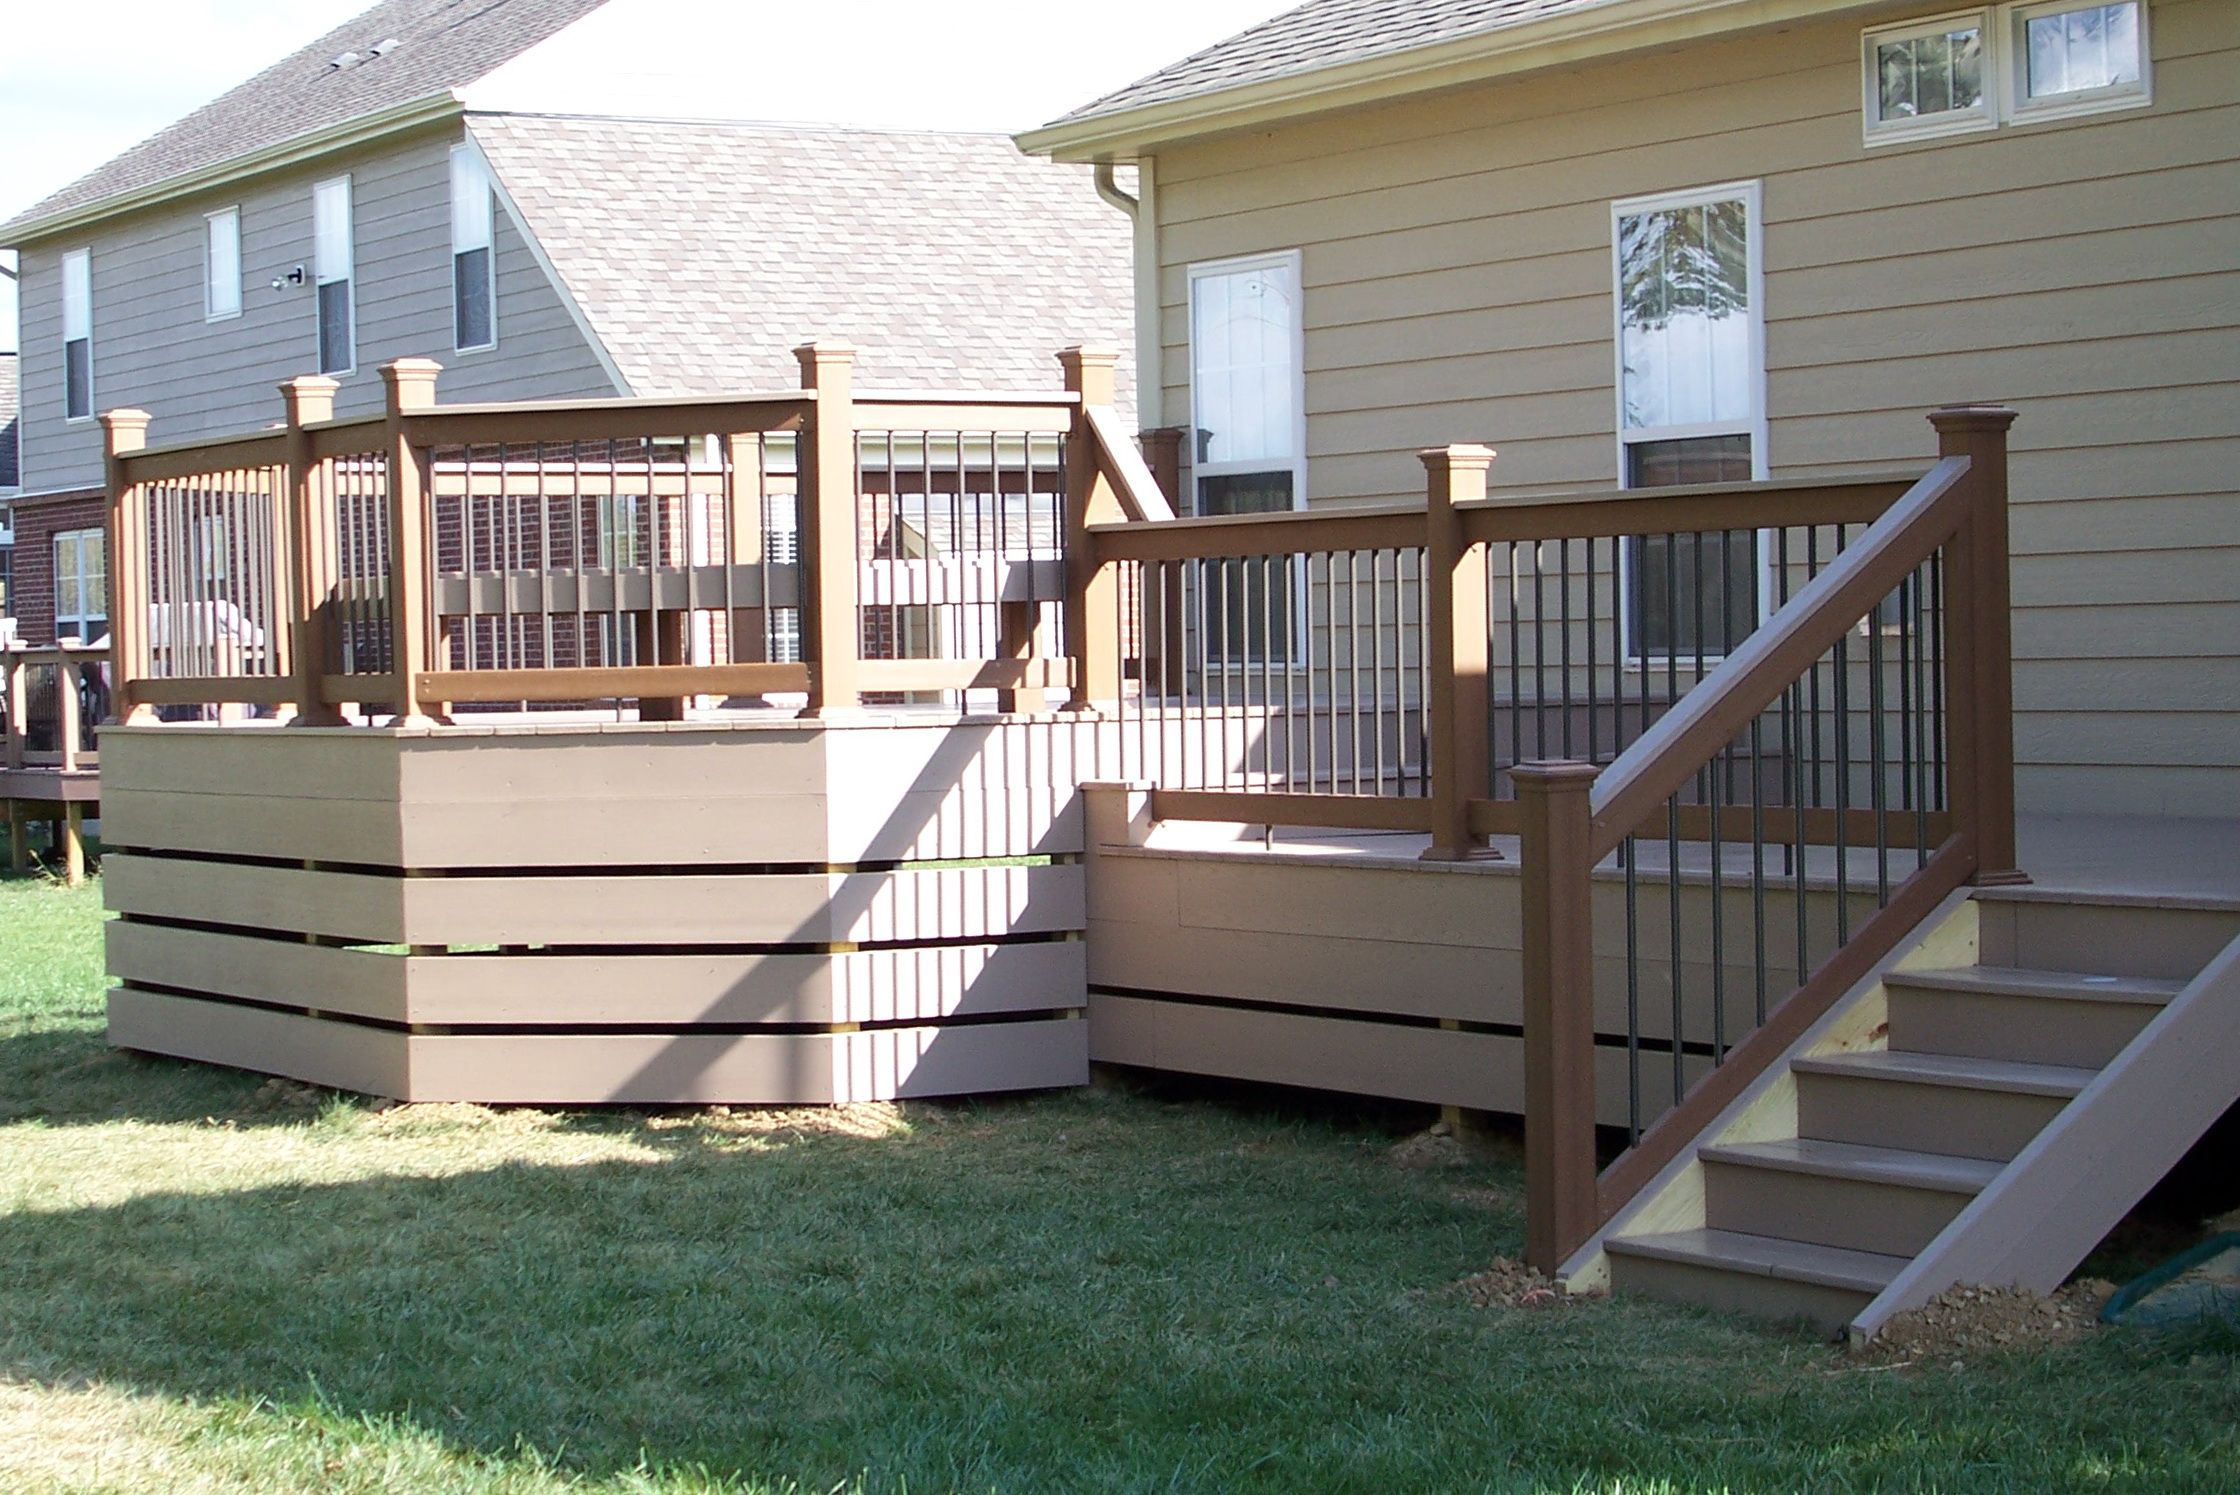 wonderful deck skirting ideas to use for your home #deckskirting